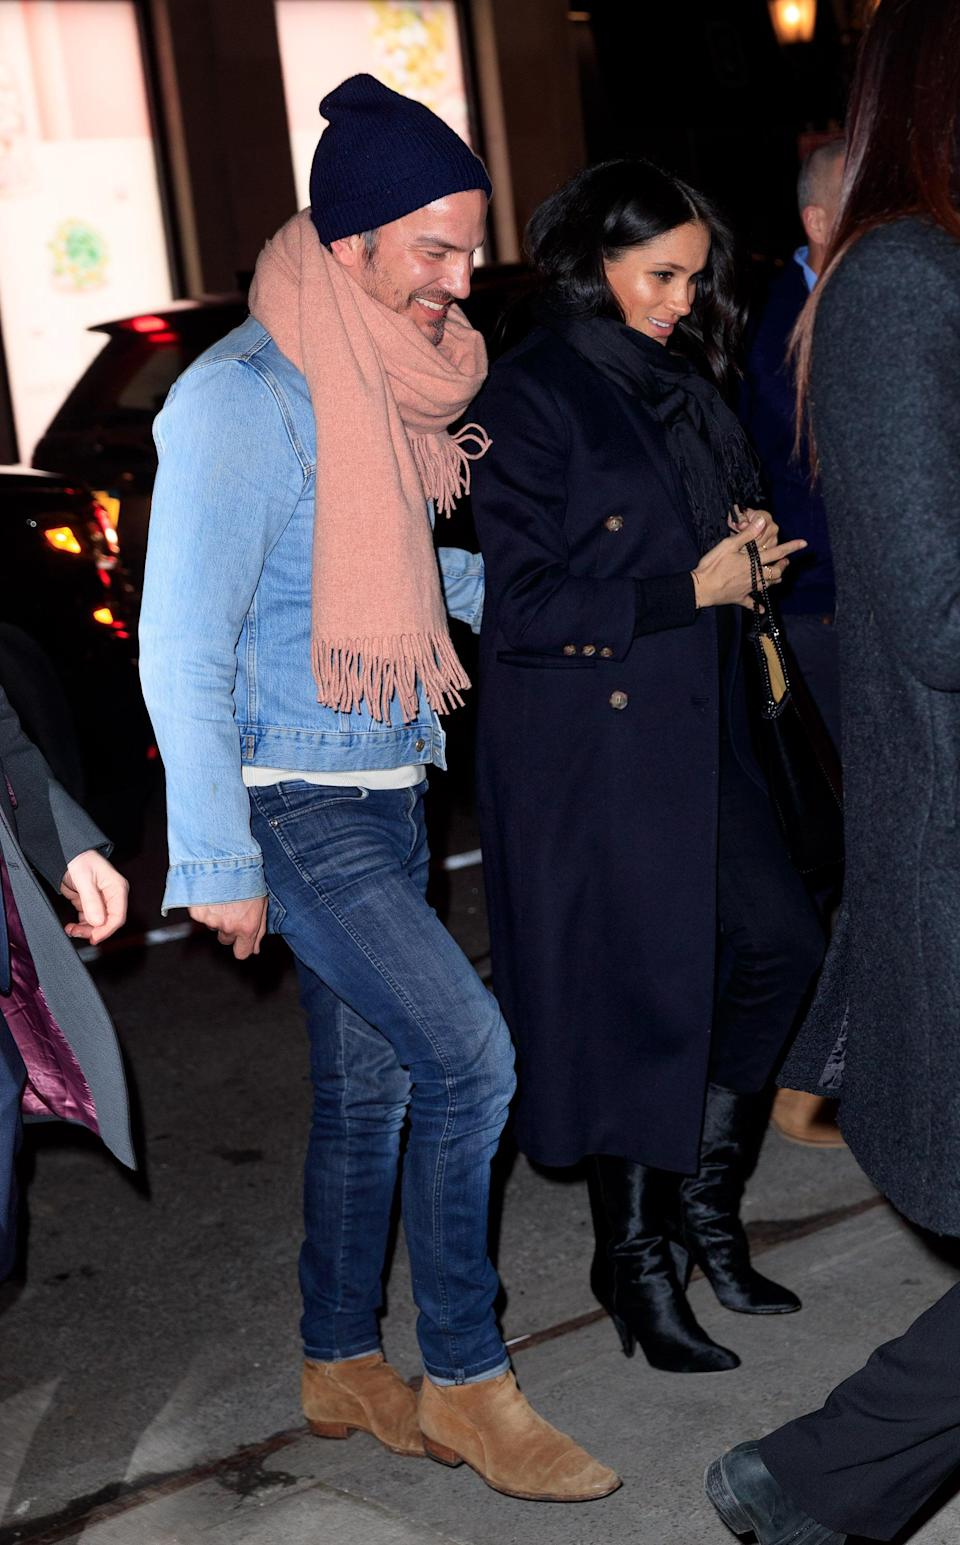 Markus Anderson and Meghan in New York on Tuesday evening [Photo: Getty]